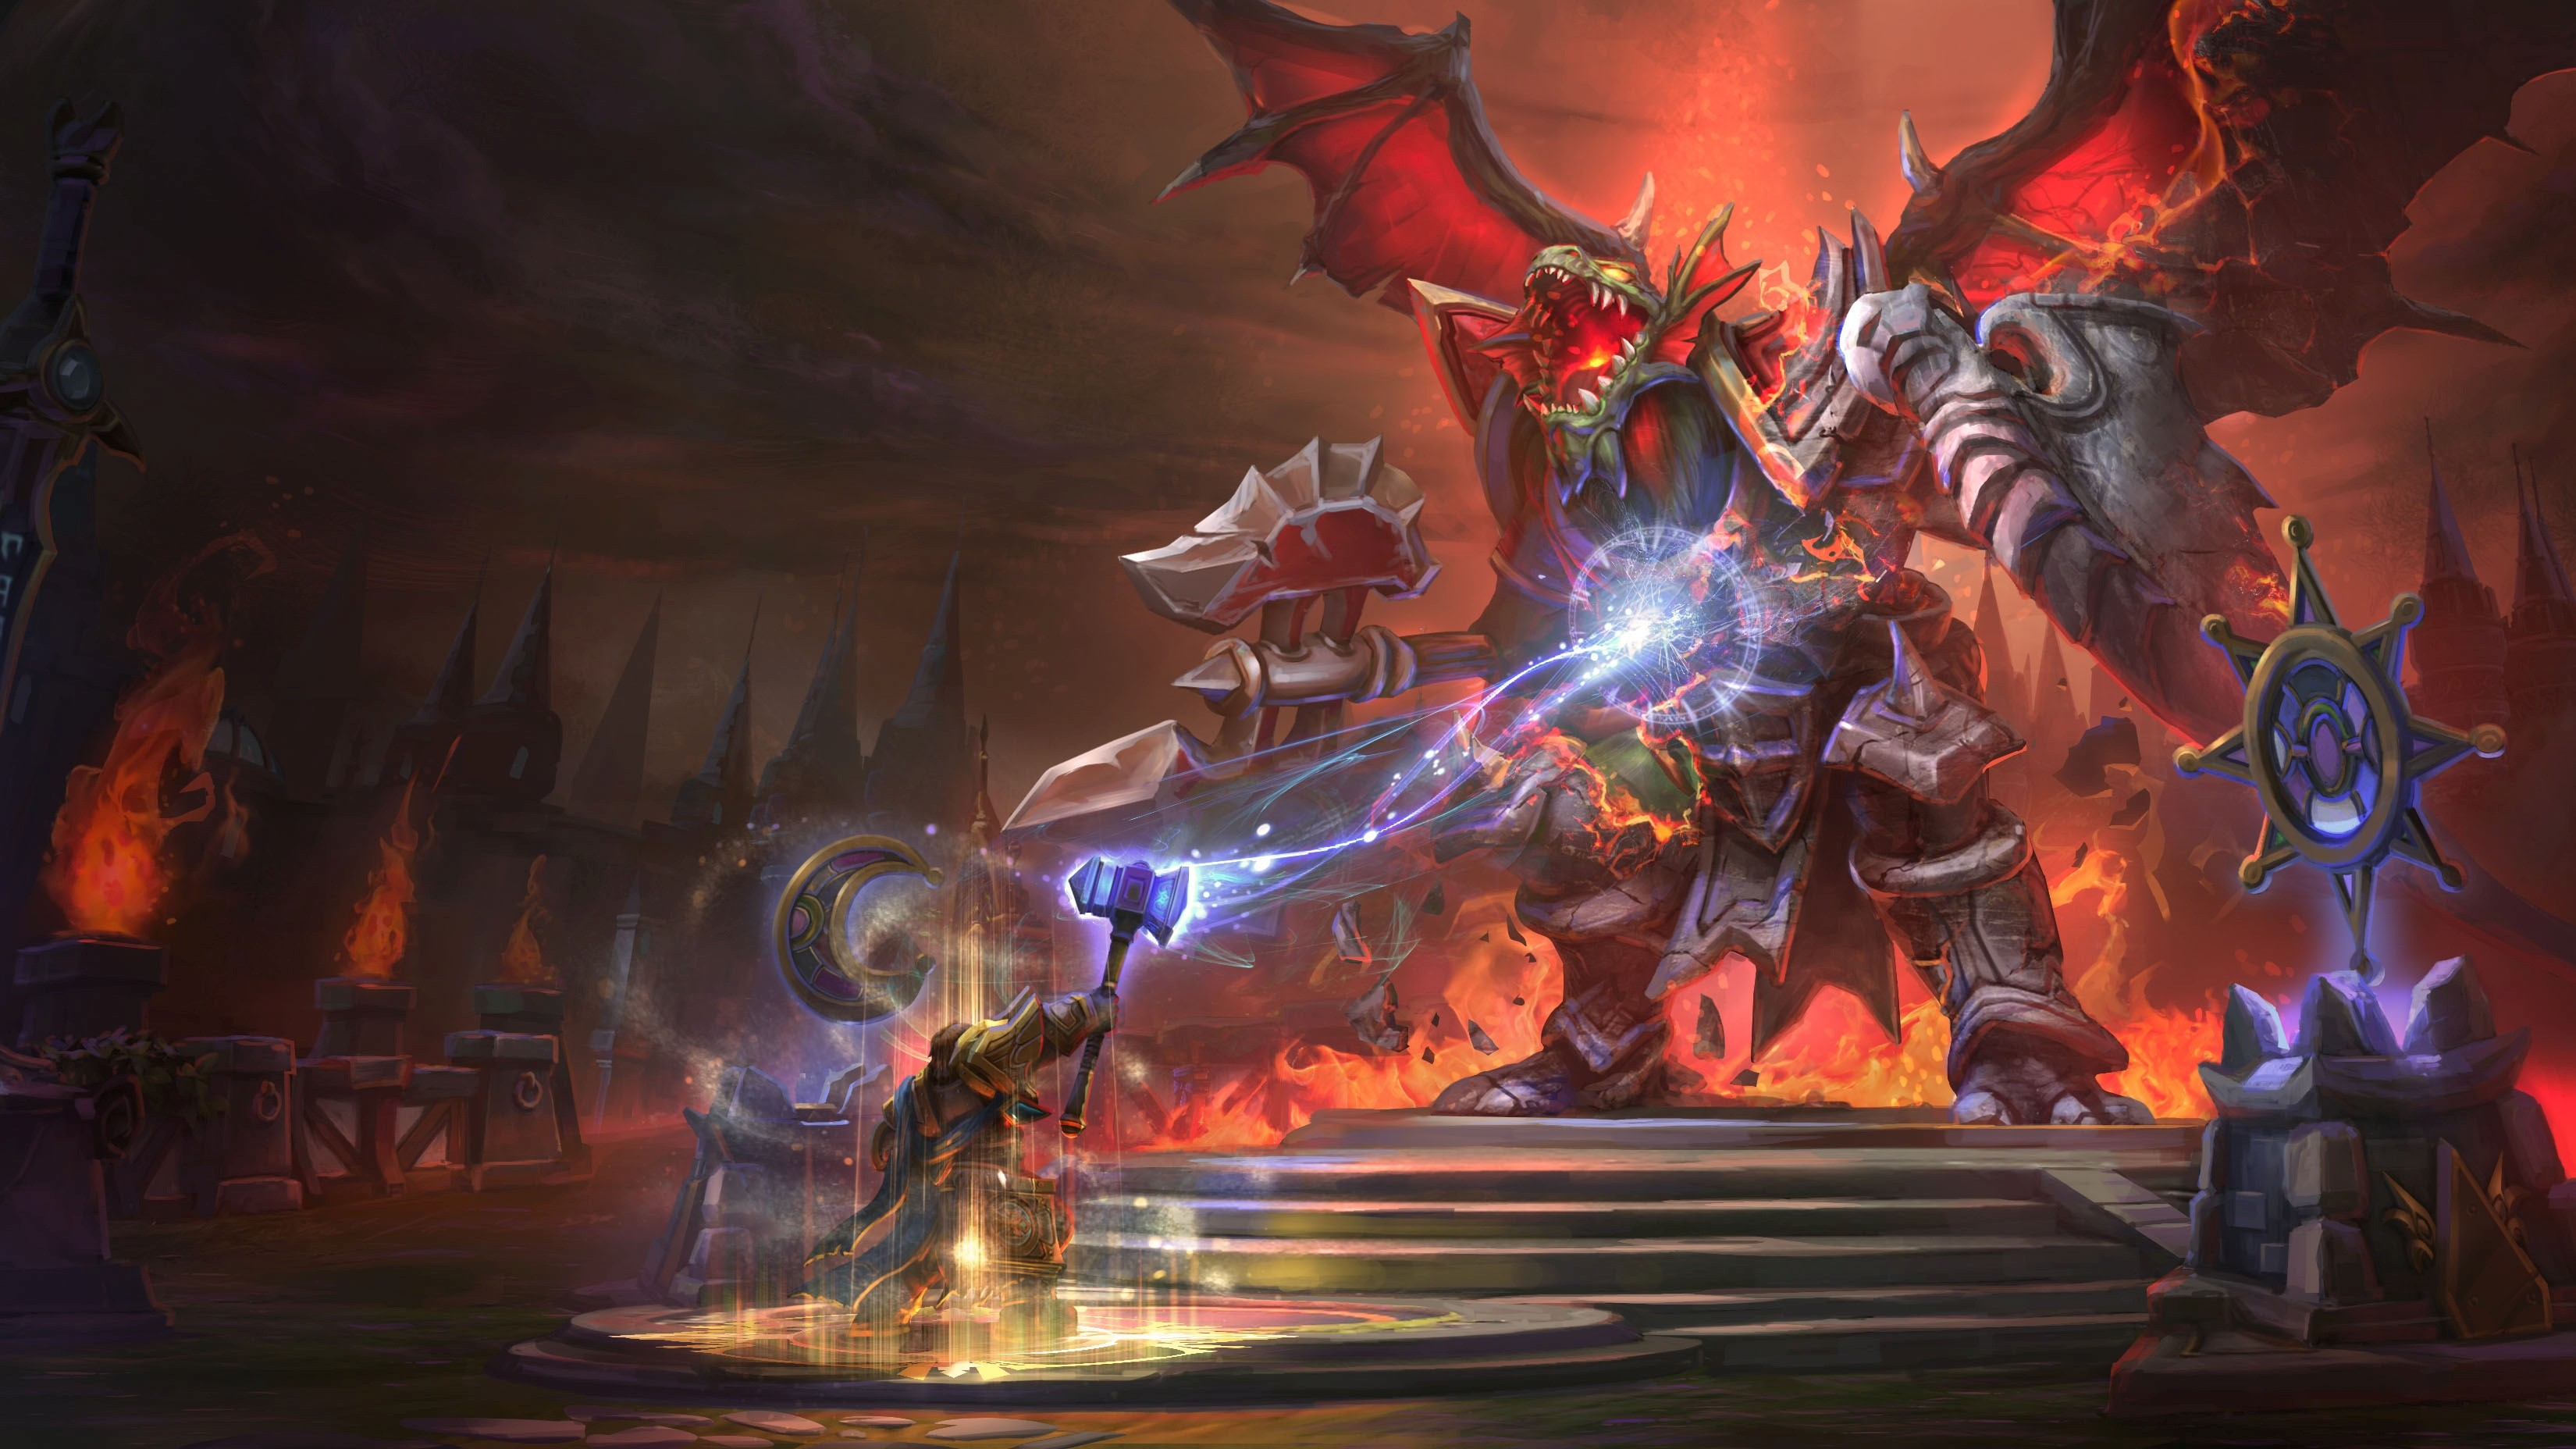 Wallpaper Heroes Of The Storm 2015 Game Fantasy Pc